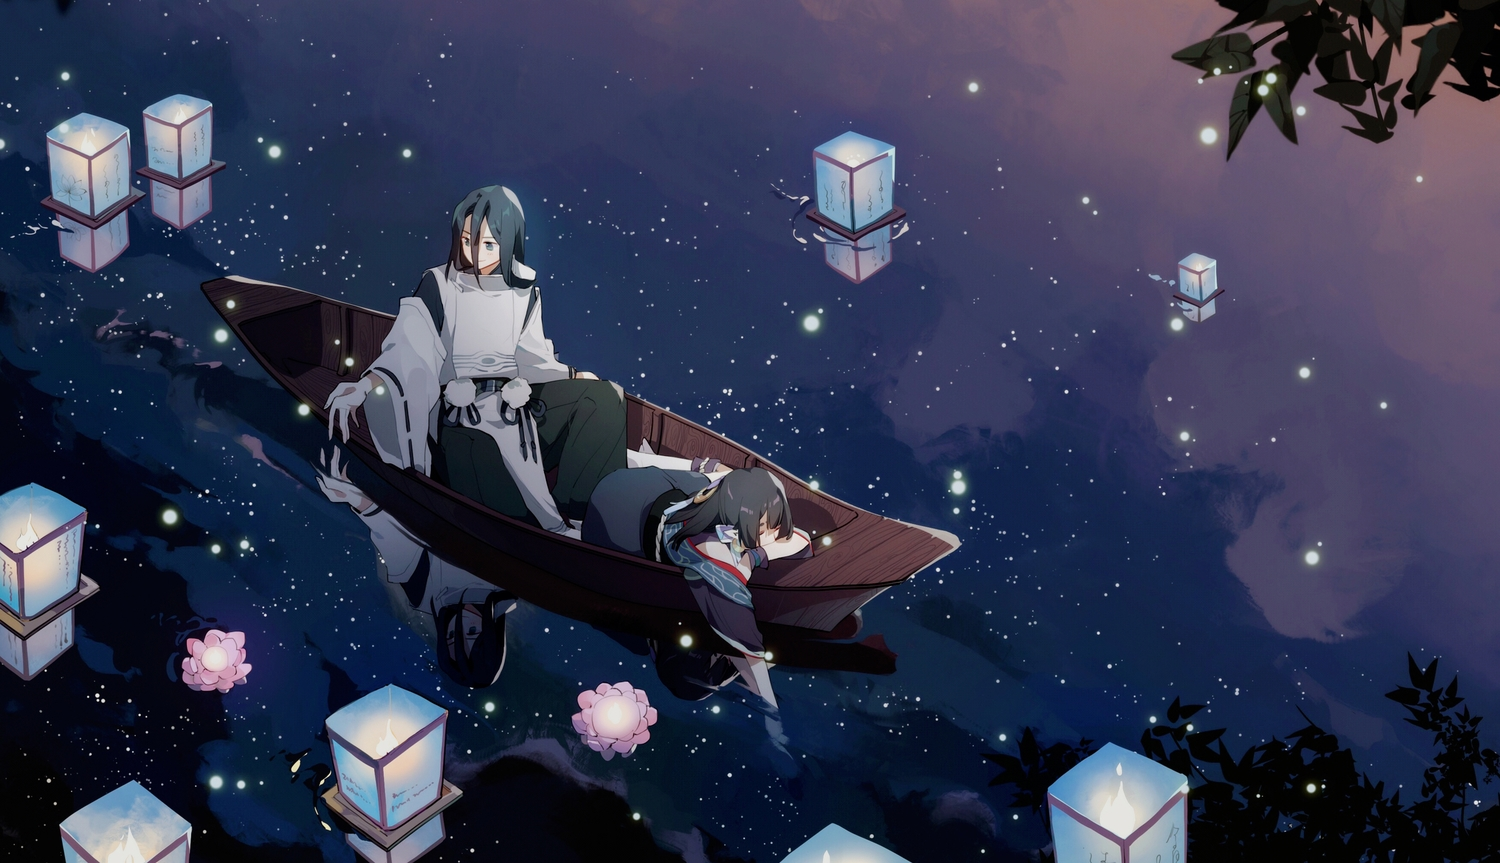 black_hair boat chajott64 clouds flowers green_eyes long_hair male night onmyouji petals reflection sky stars tagme_(character) water